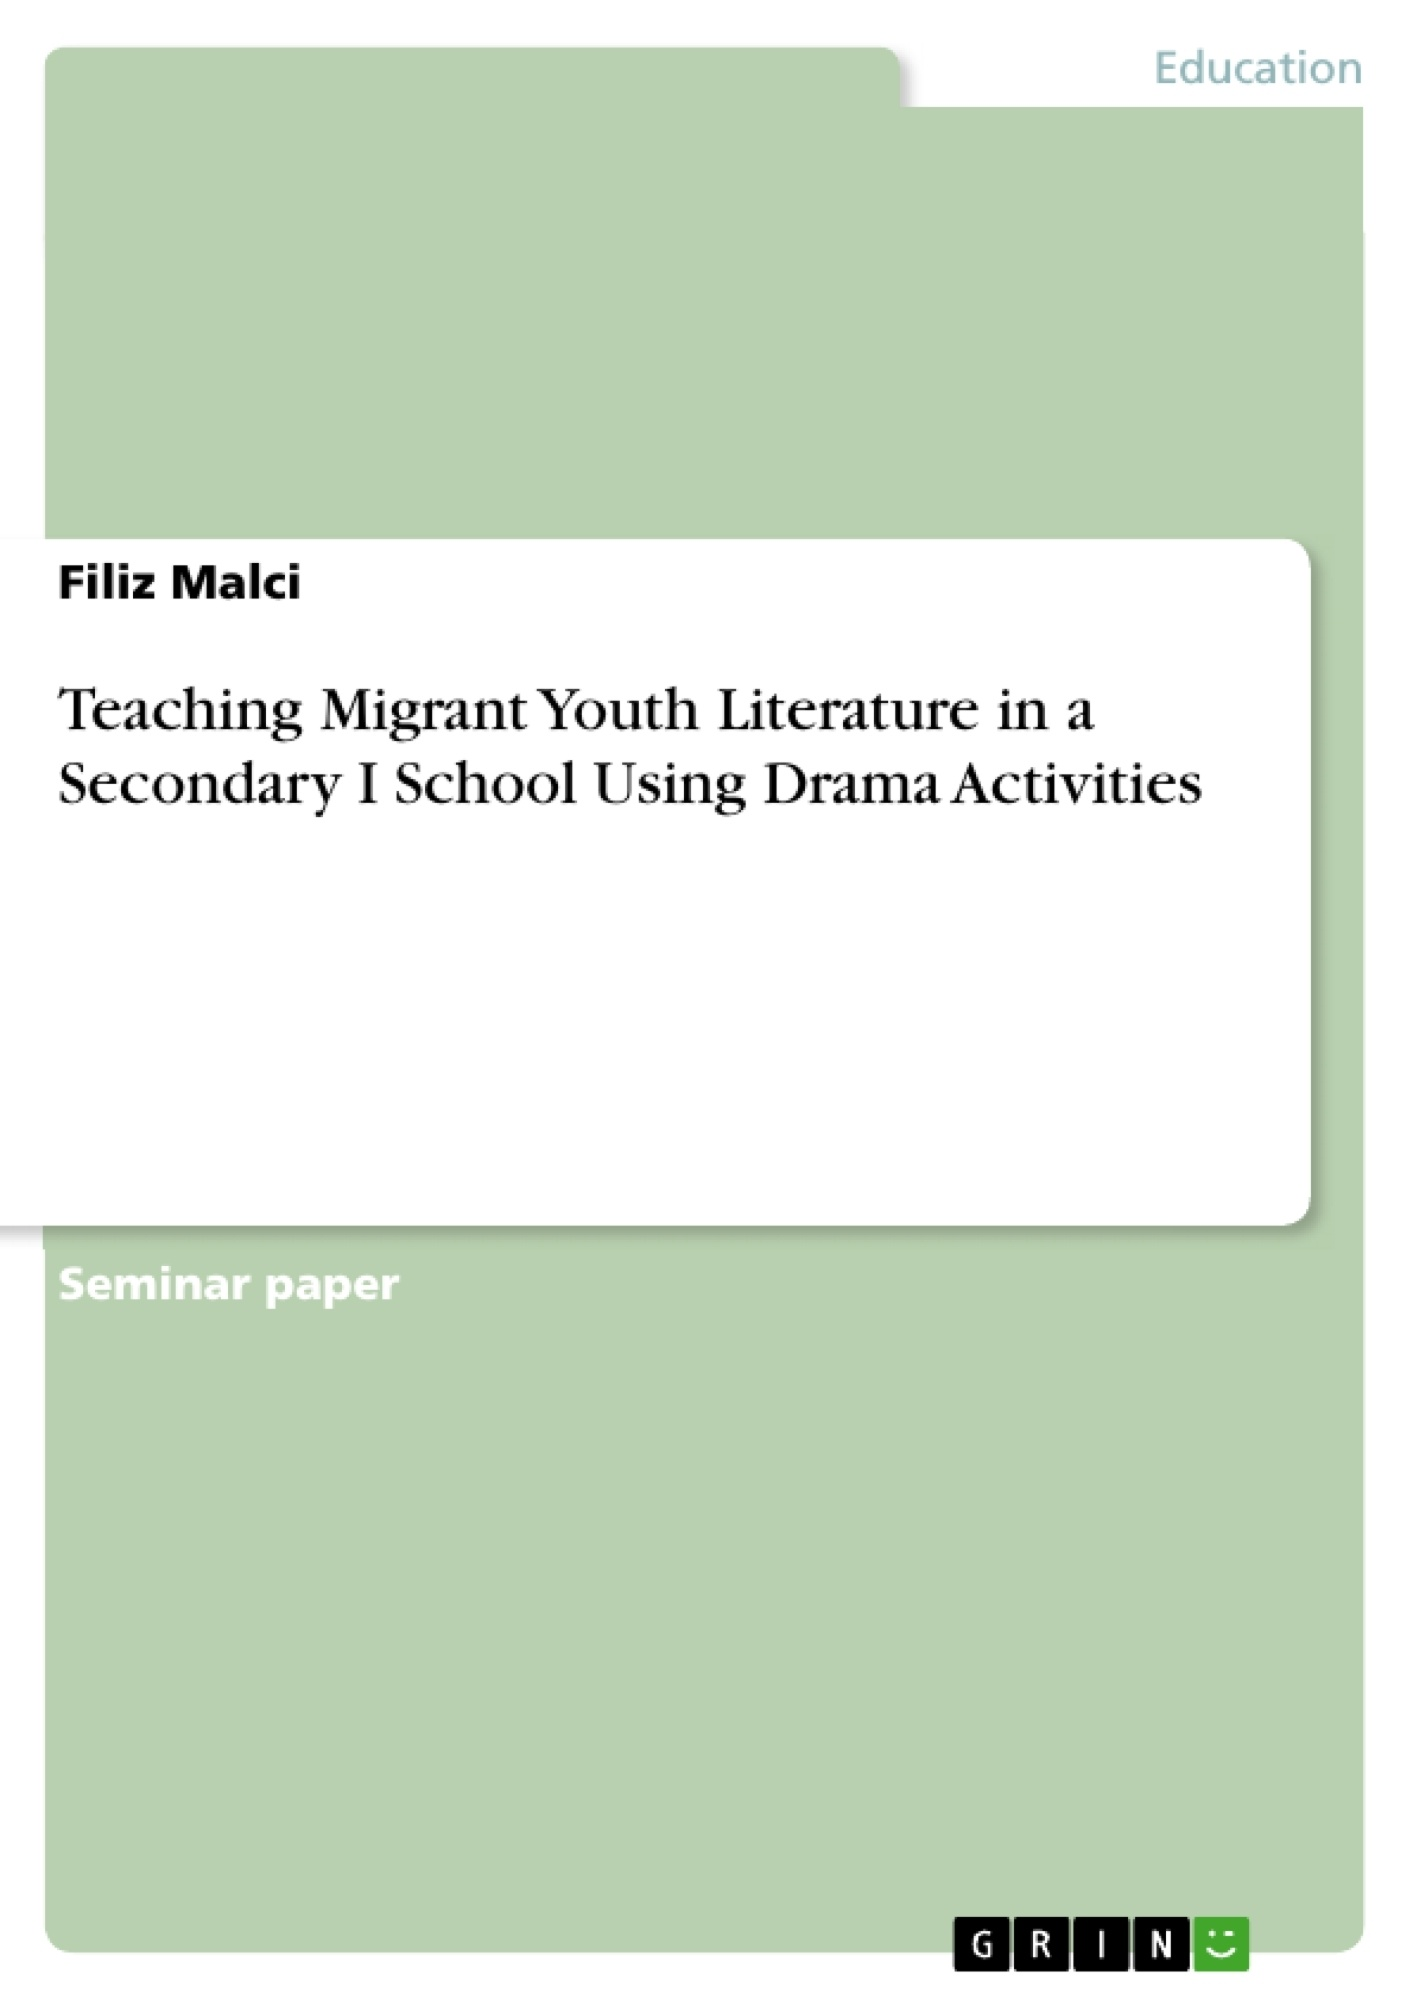 Title: Teaching Migrant Youth Literature in a Secondary I School Using Drama Activities